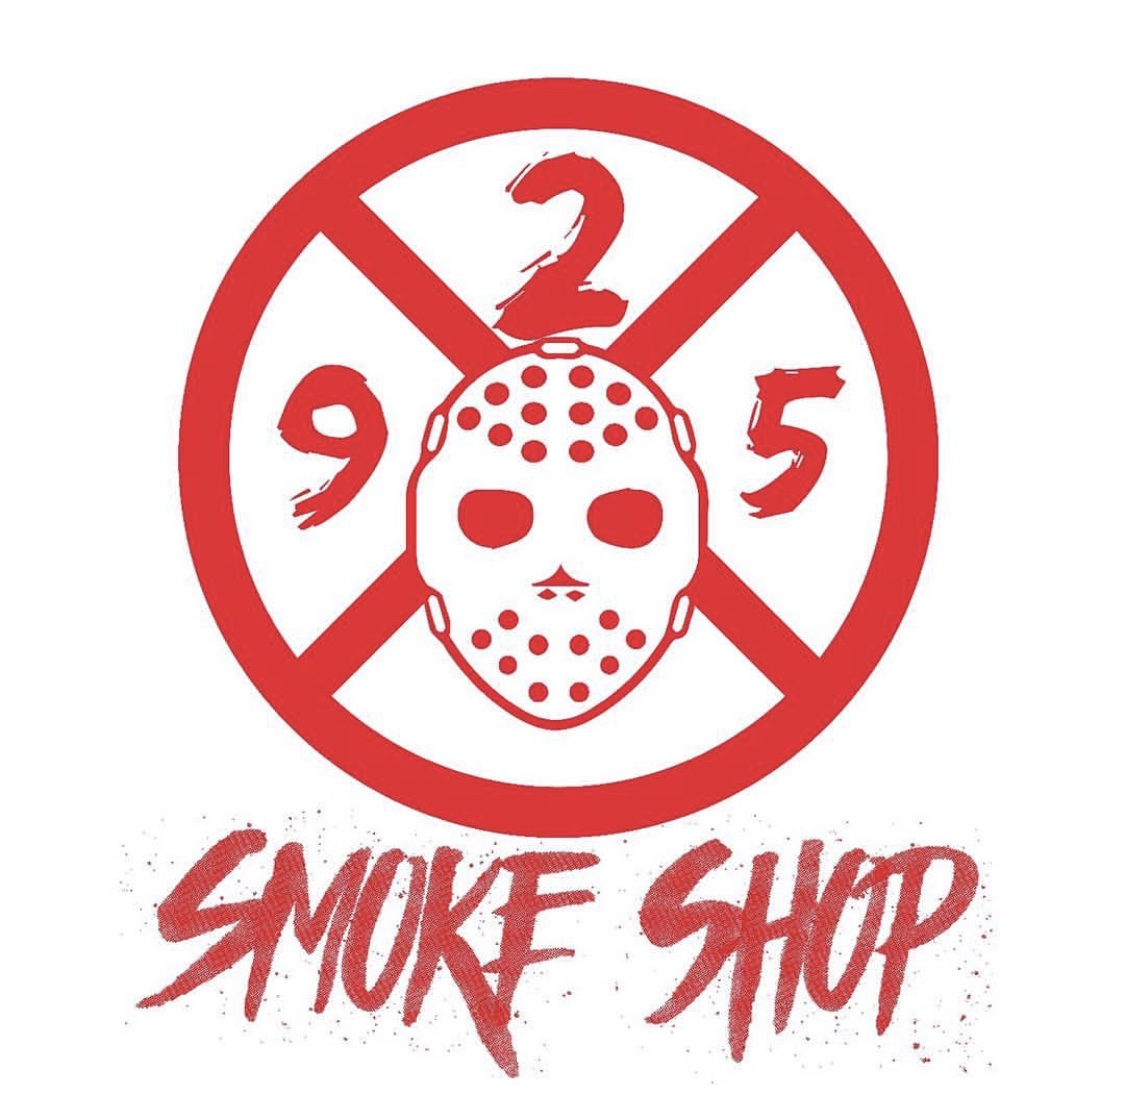 925 Smoke Shop Products, Coupons, and Reviews